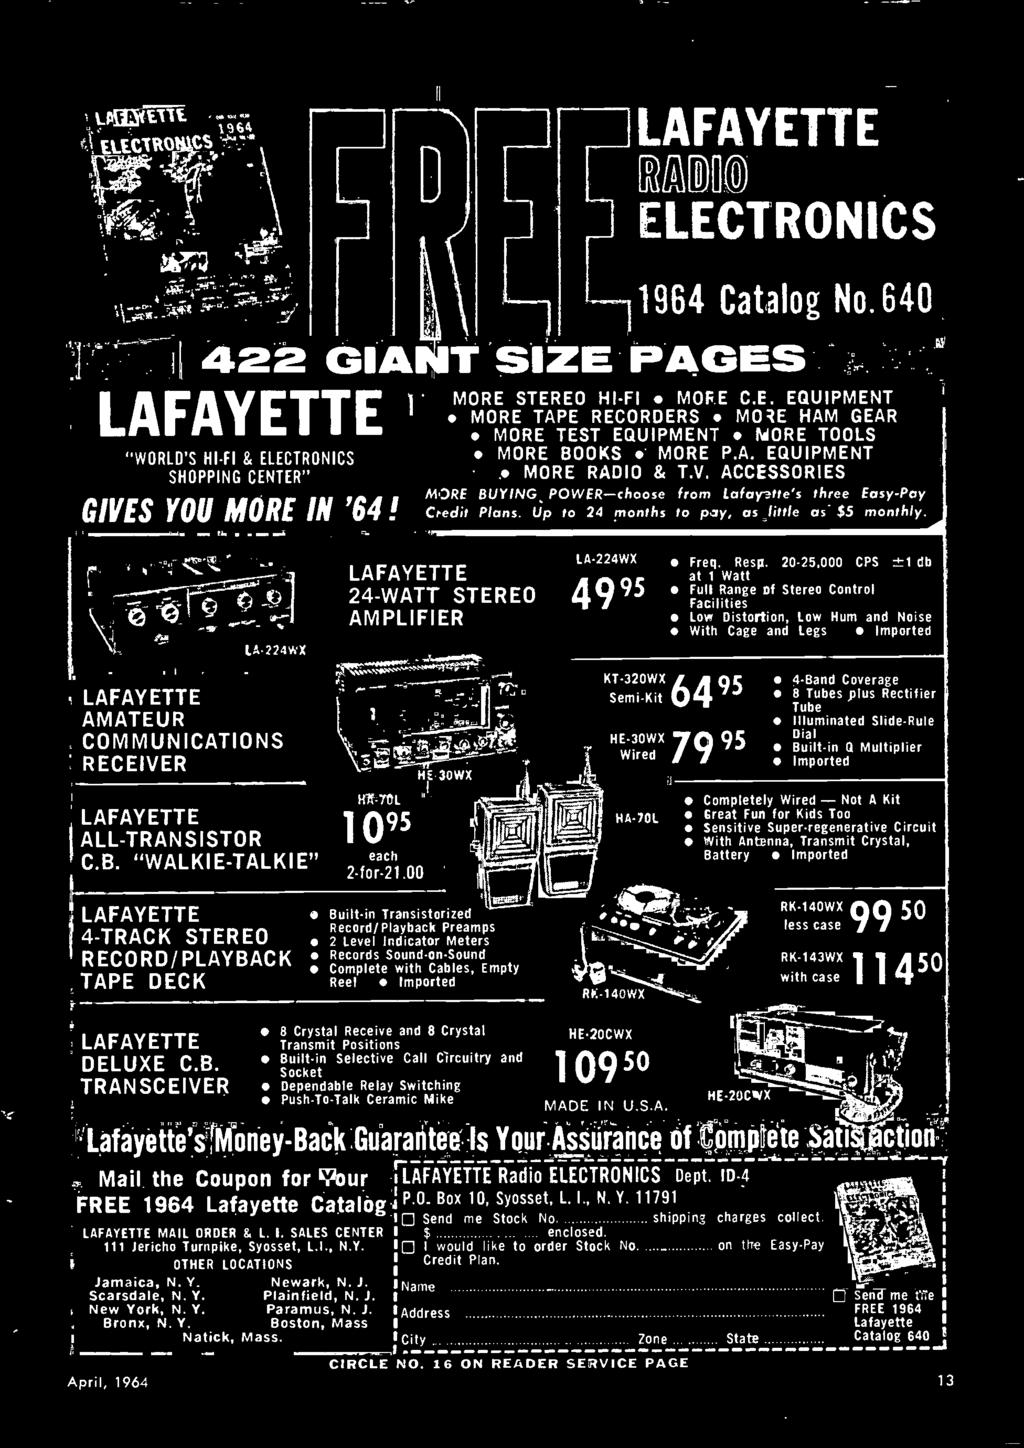 Popular 1964 Electronics 35 Cents Talkie Cb It P 65 From Snap Circuits Micro Kit Courtesy Elenco Inc 00 He 30wx Built In Transistorized Record Playback Preamps 2 Level Indicator Meters Records